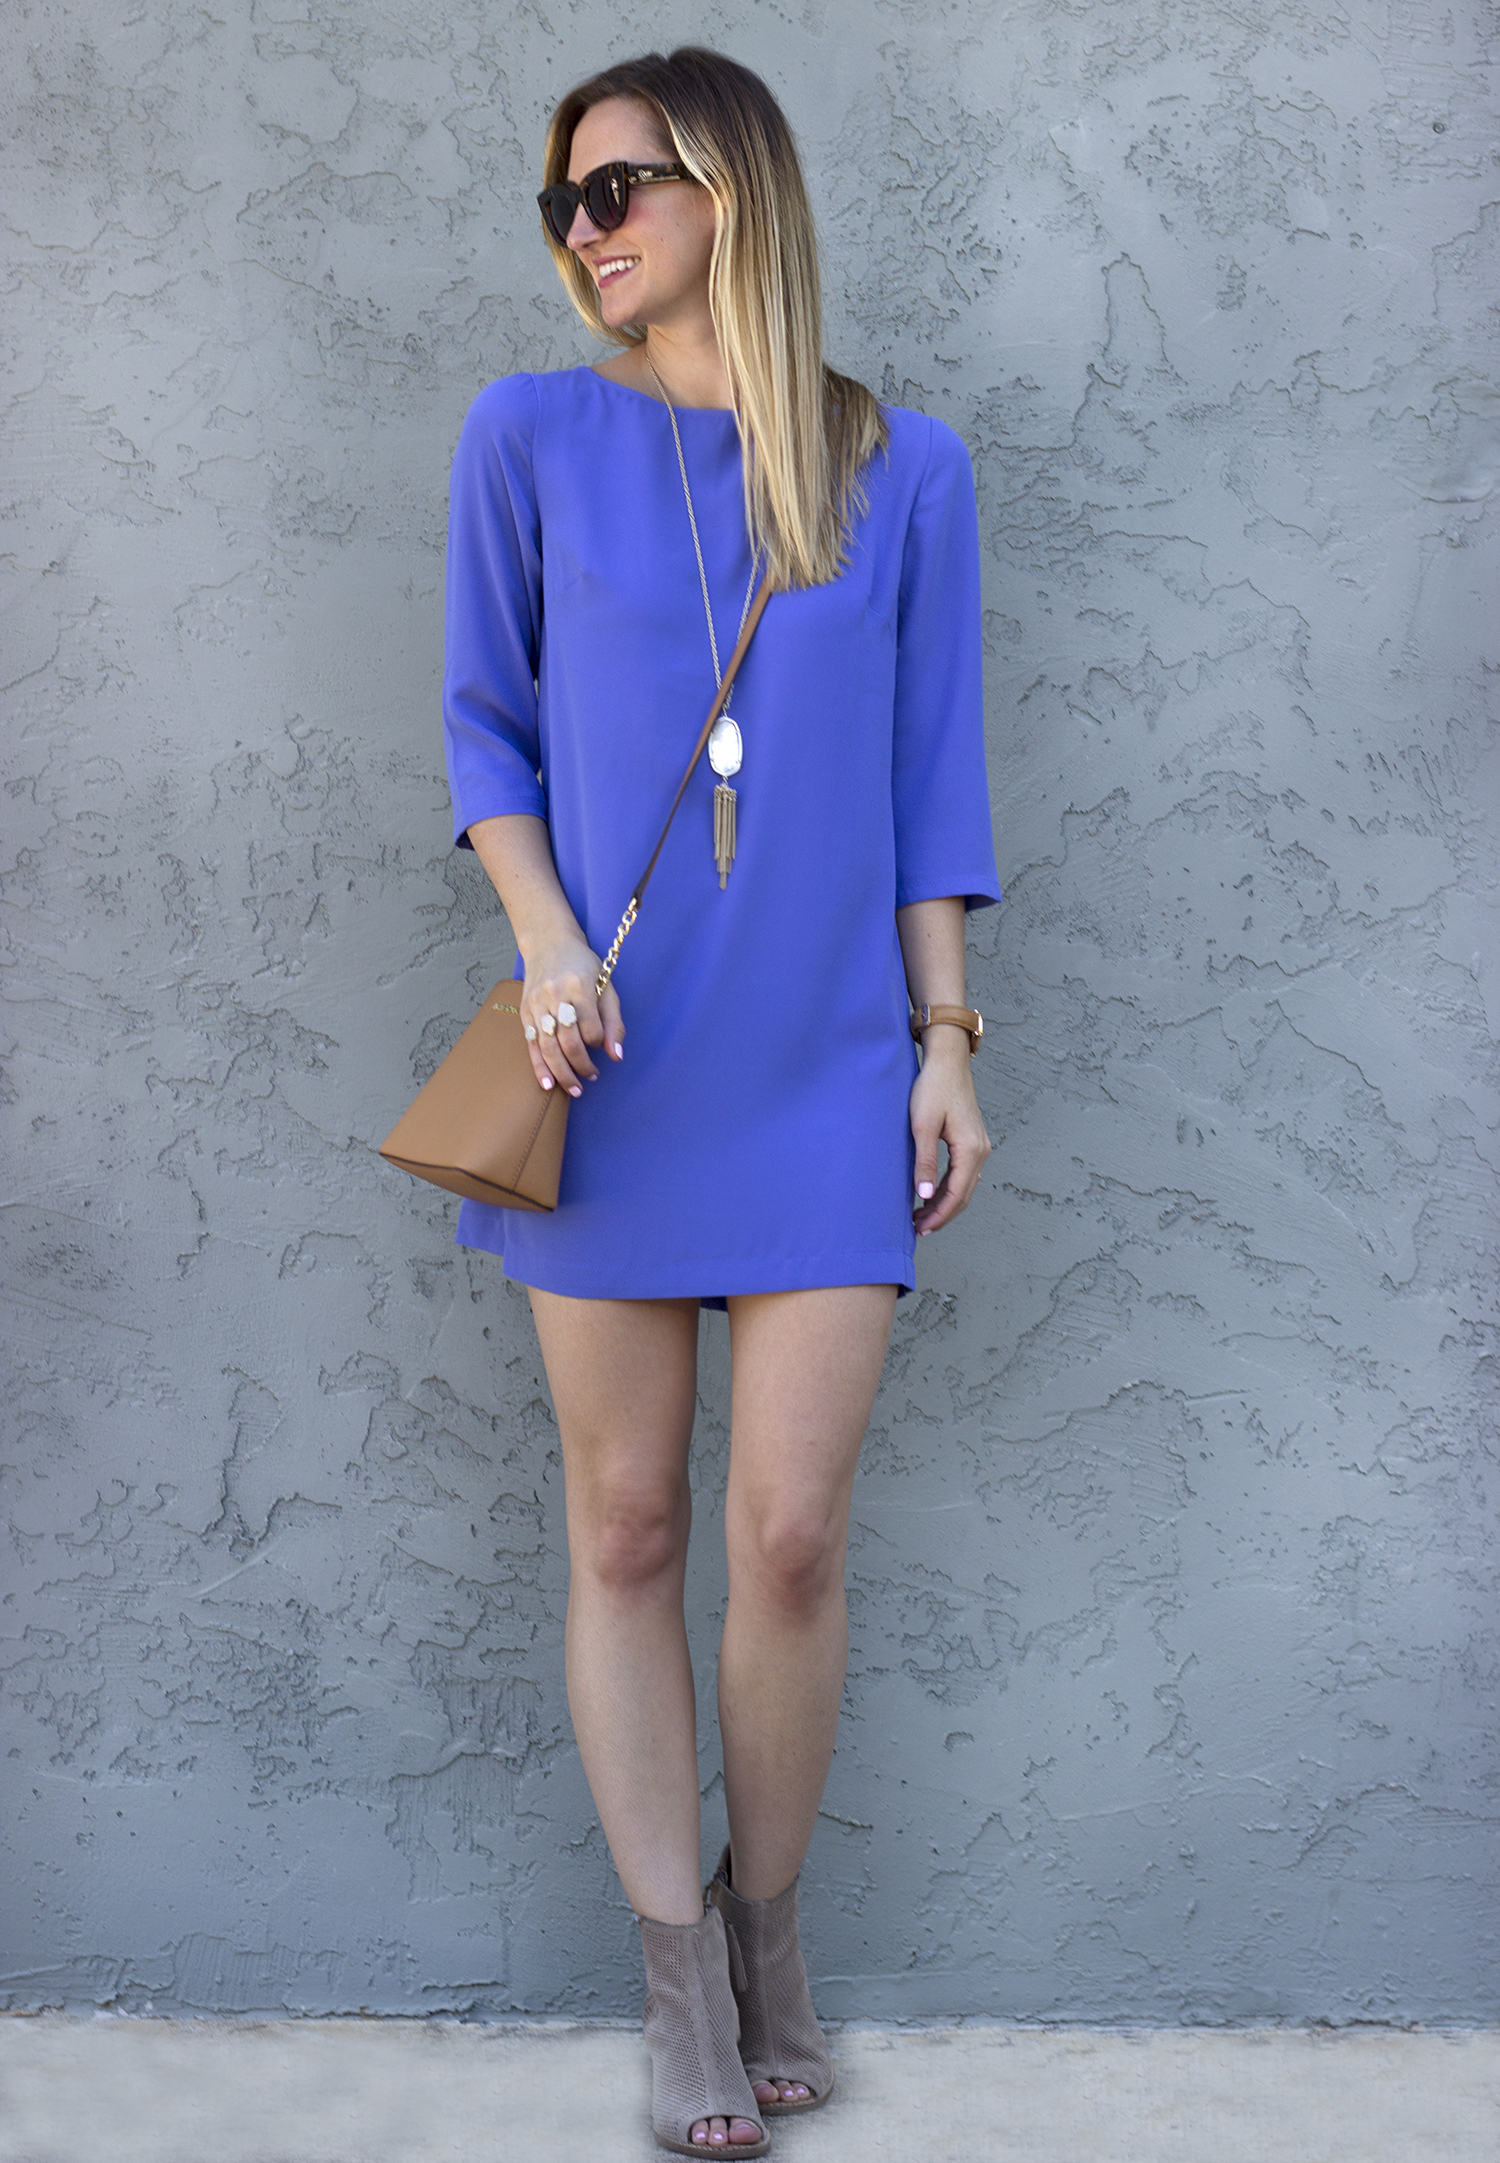 1-livvyland-blog-olivia-watson-austin-texas-fashion-blogger-periwinkle-blue-shift-dress-keyhole-michael-kors-handbag-quay-cateye-sunglasses-toms-taupe-majorca-booties-kendra-scott-naomi-drusy-ring-2